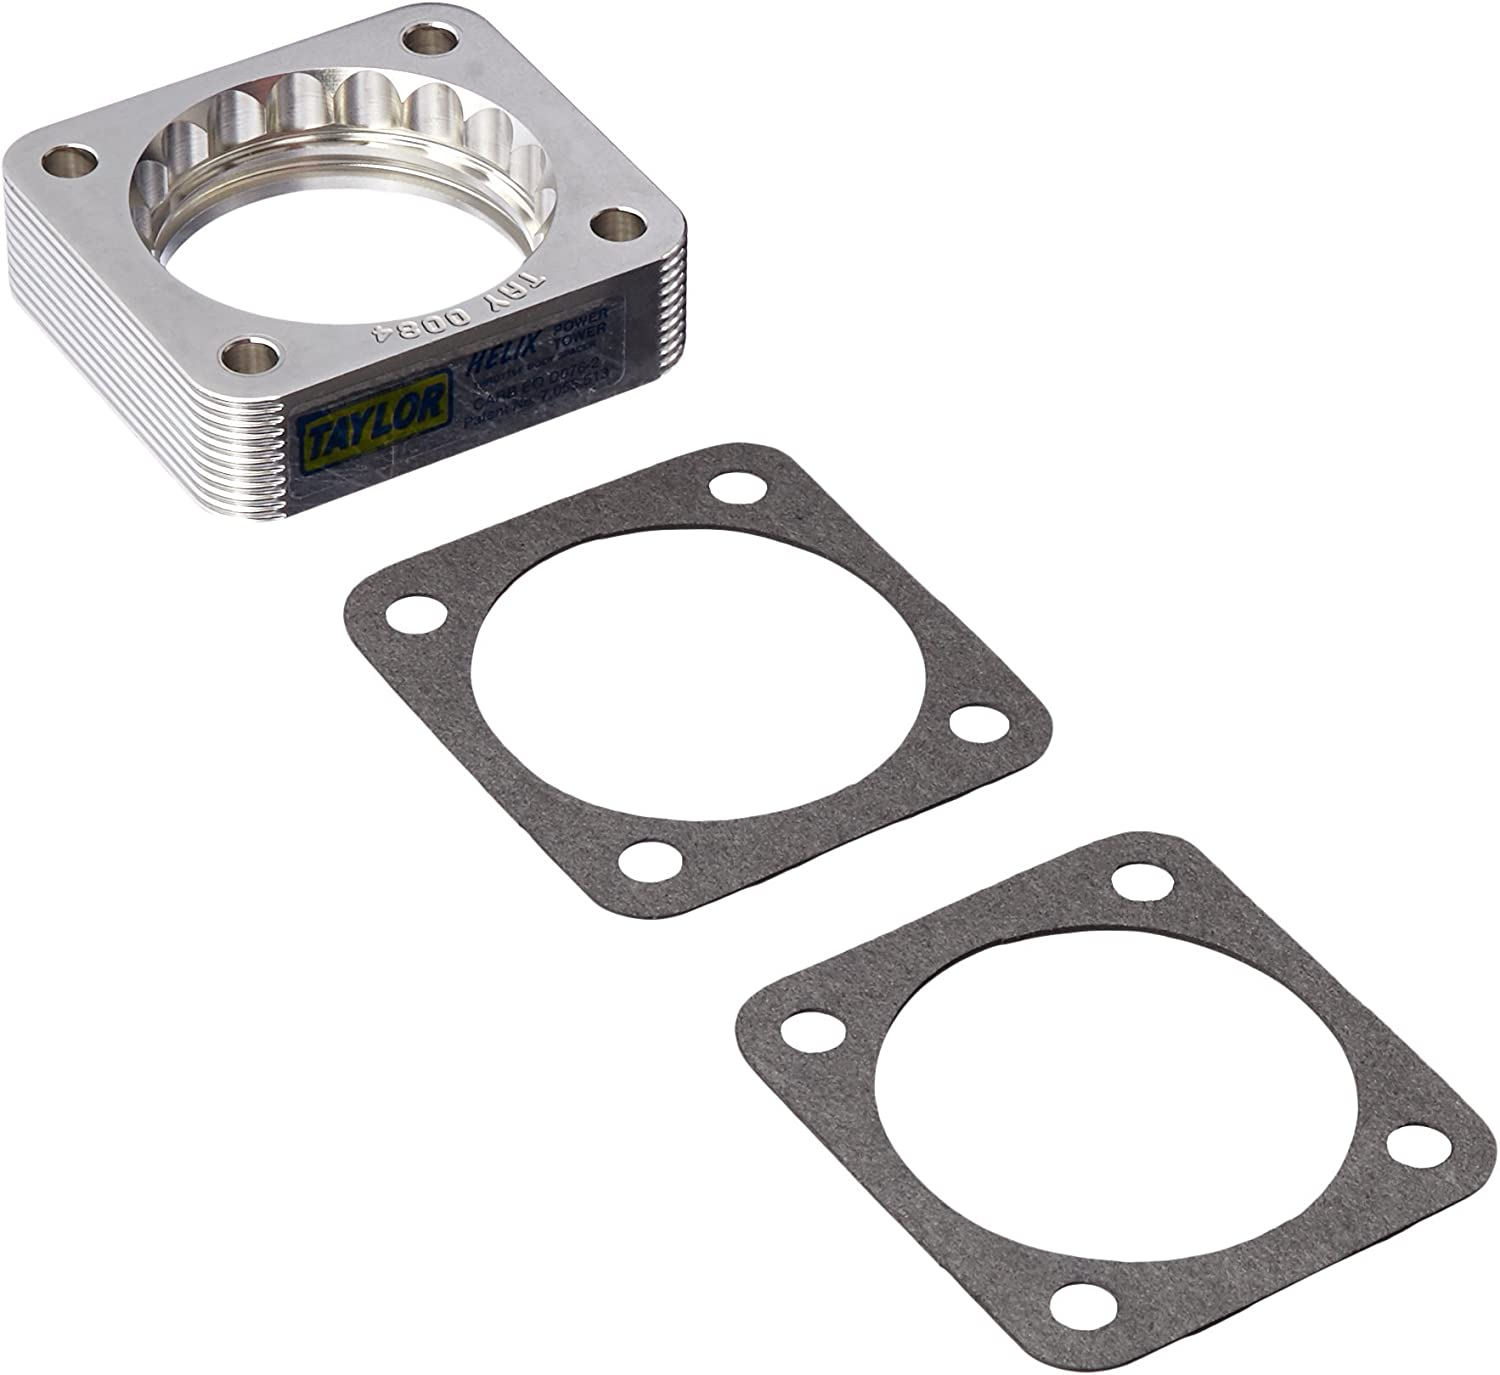 Taylor Cable 94335 Helix Max 70% OFF Power Throttle Tower Body Spacer Plus Limited time trial price